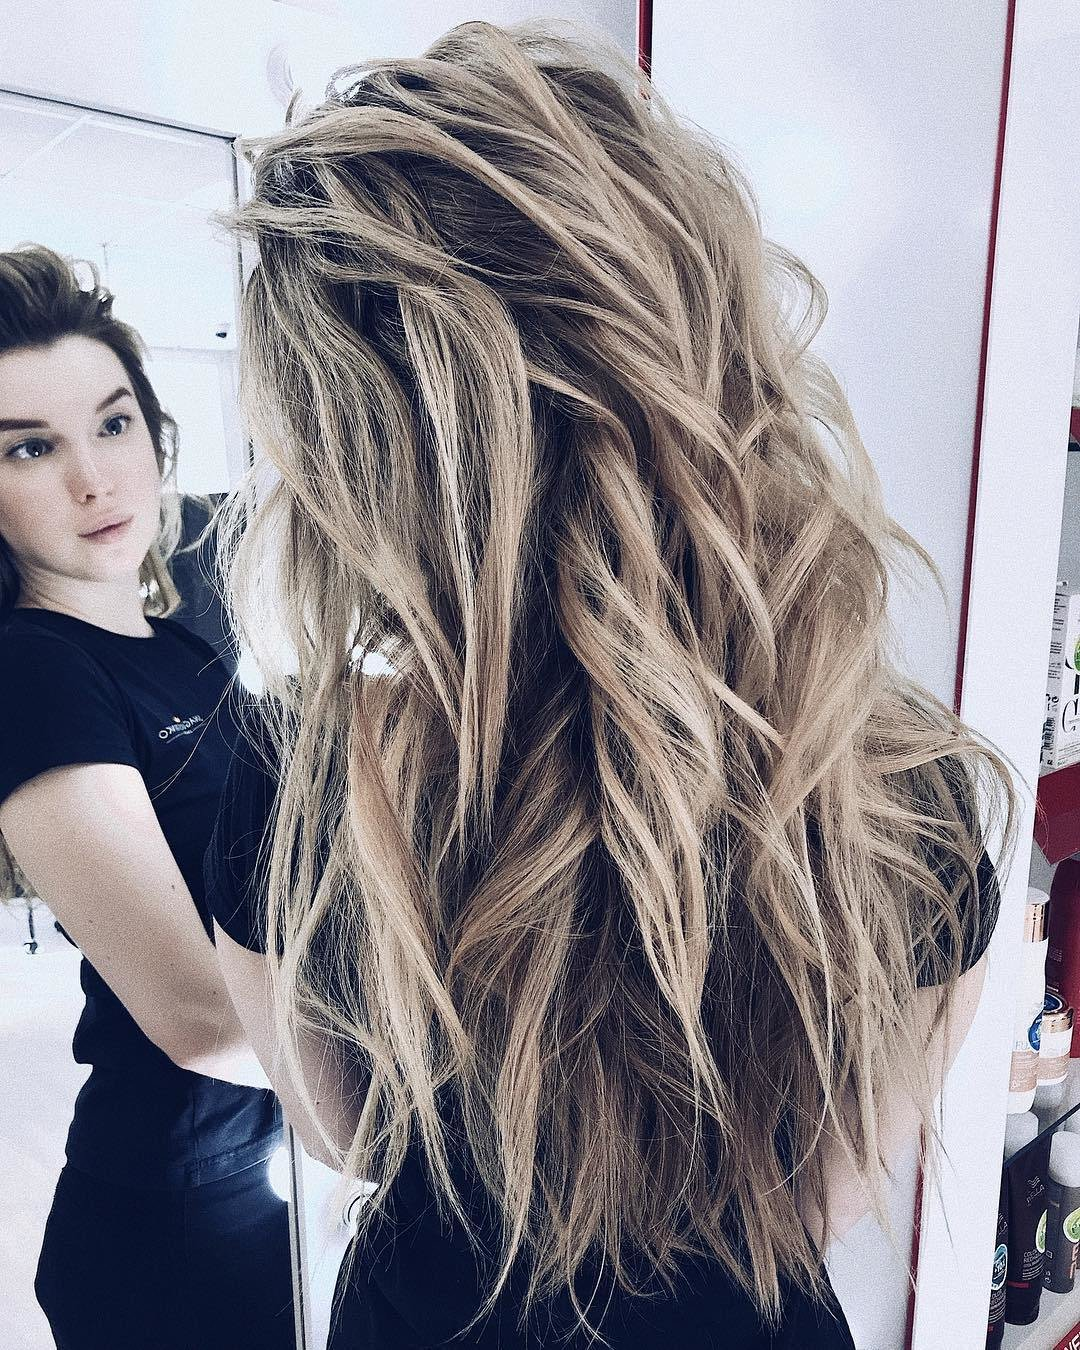 New 10 Gorgeous Long Wavy Perm Hairstyles Long Hair Styles 2019 Ideas With Pictures